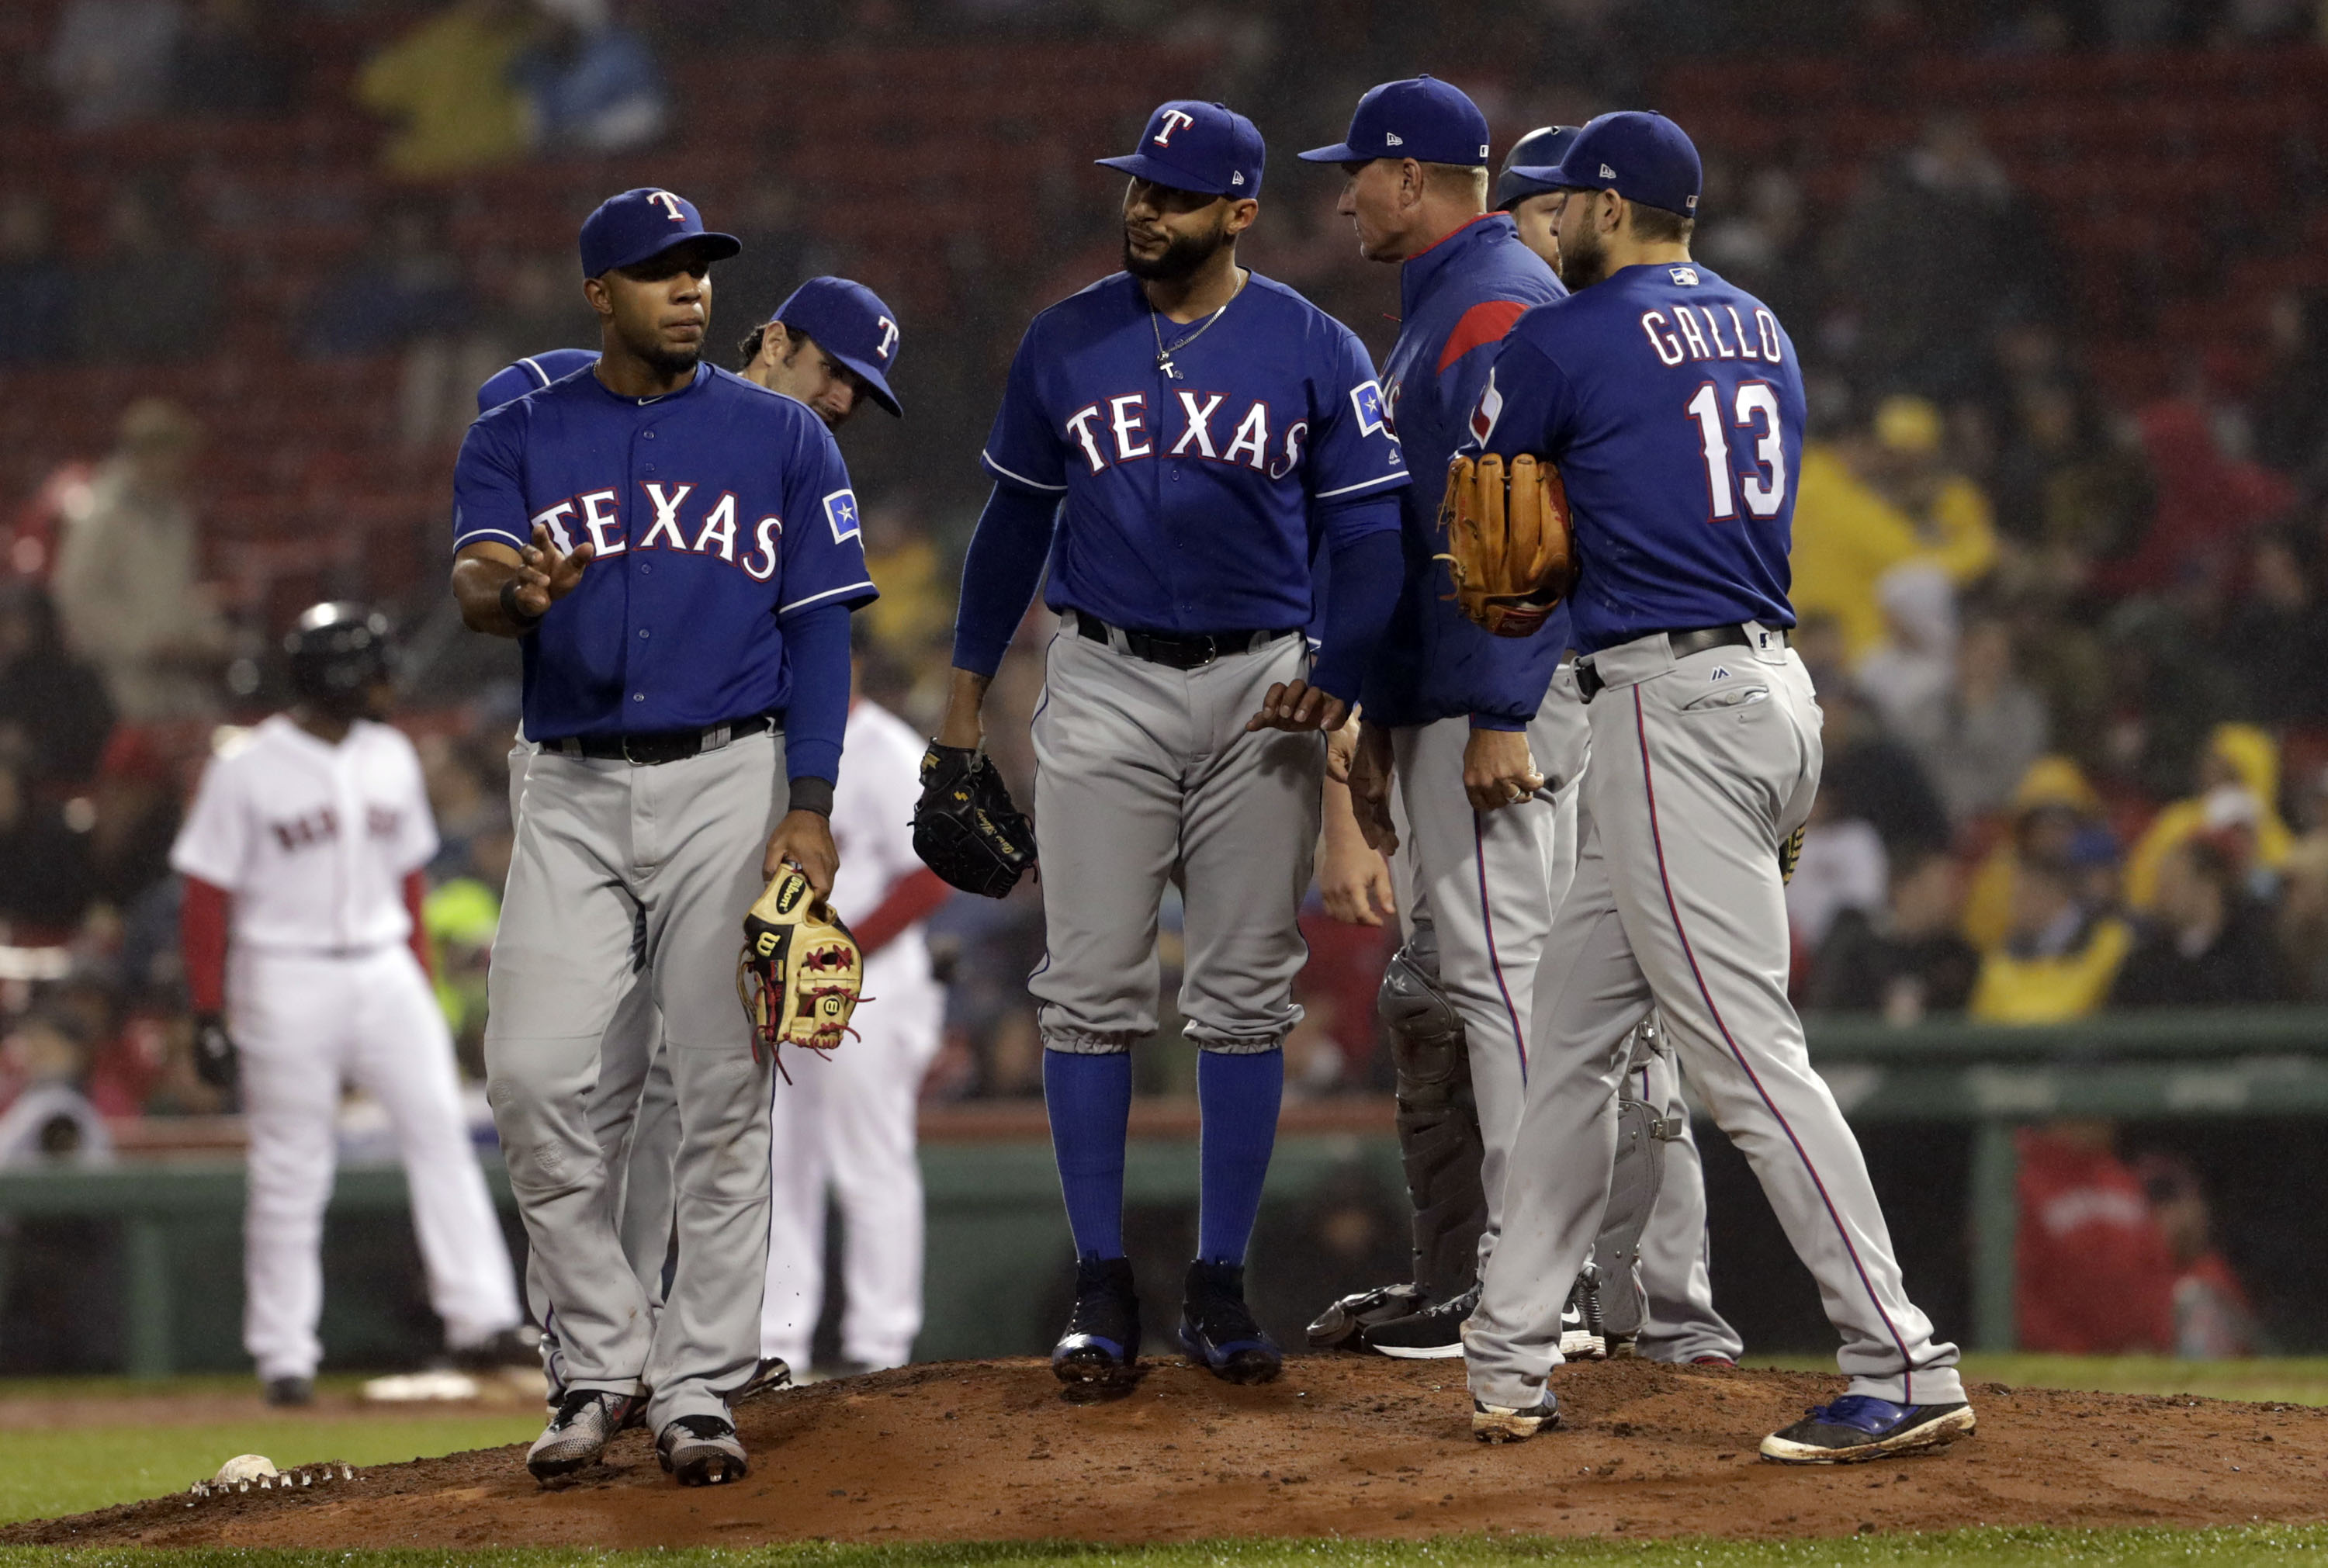 10073468-mlb-texas-rangers-at-boston-red-sox